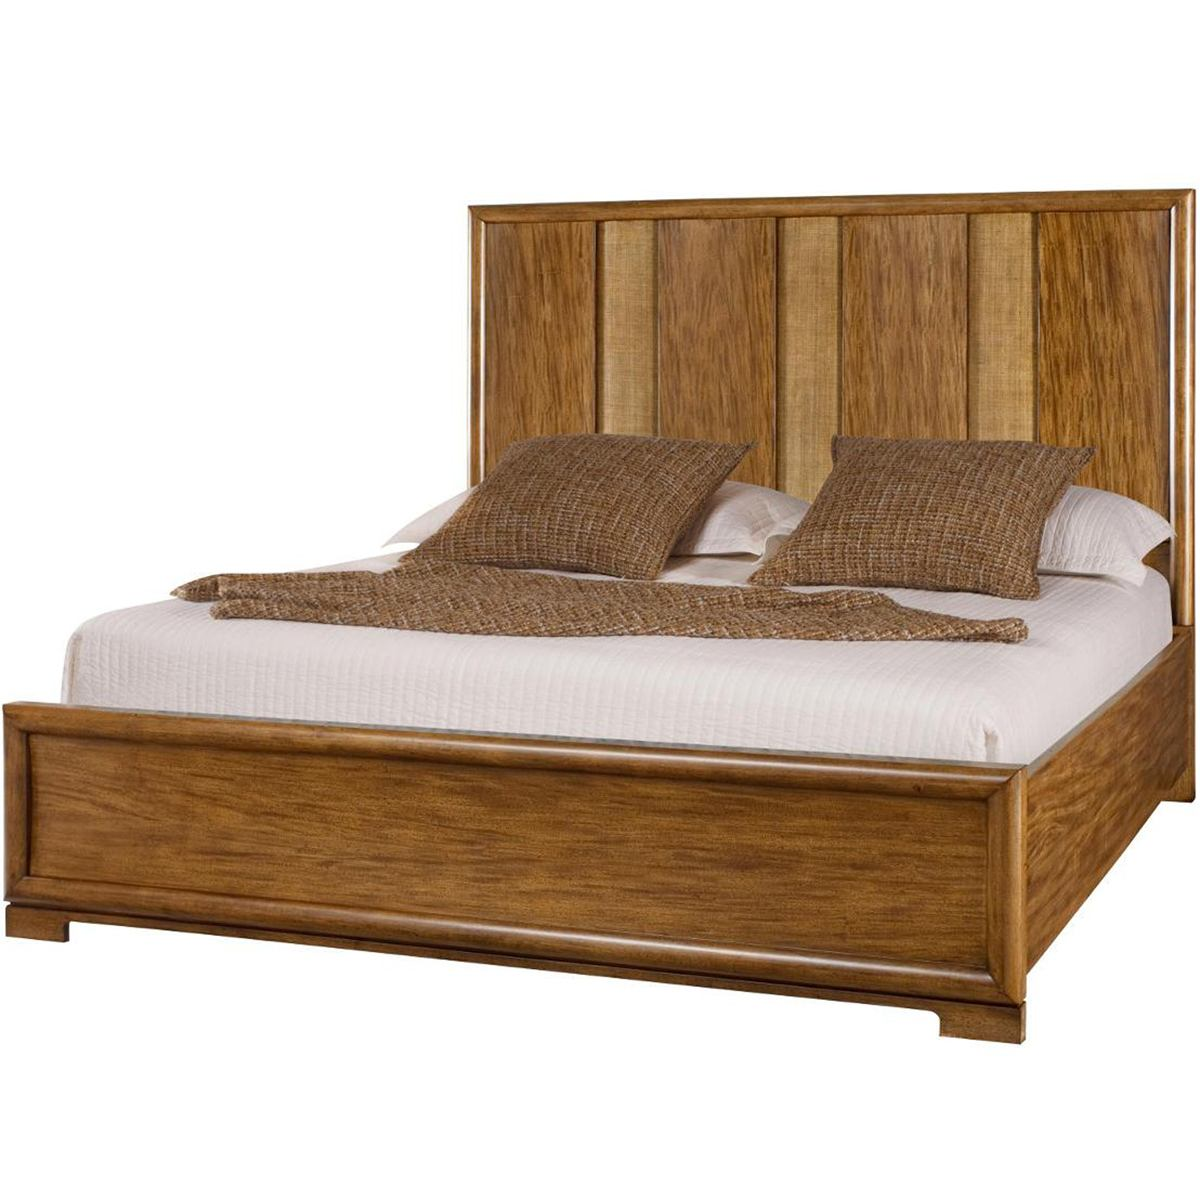 American Drew Grove Point California King Raffia Panel Bed in Sand 314-317R CODE:UNIV20 for 20% Off